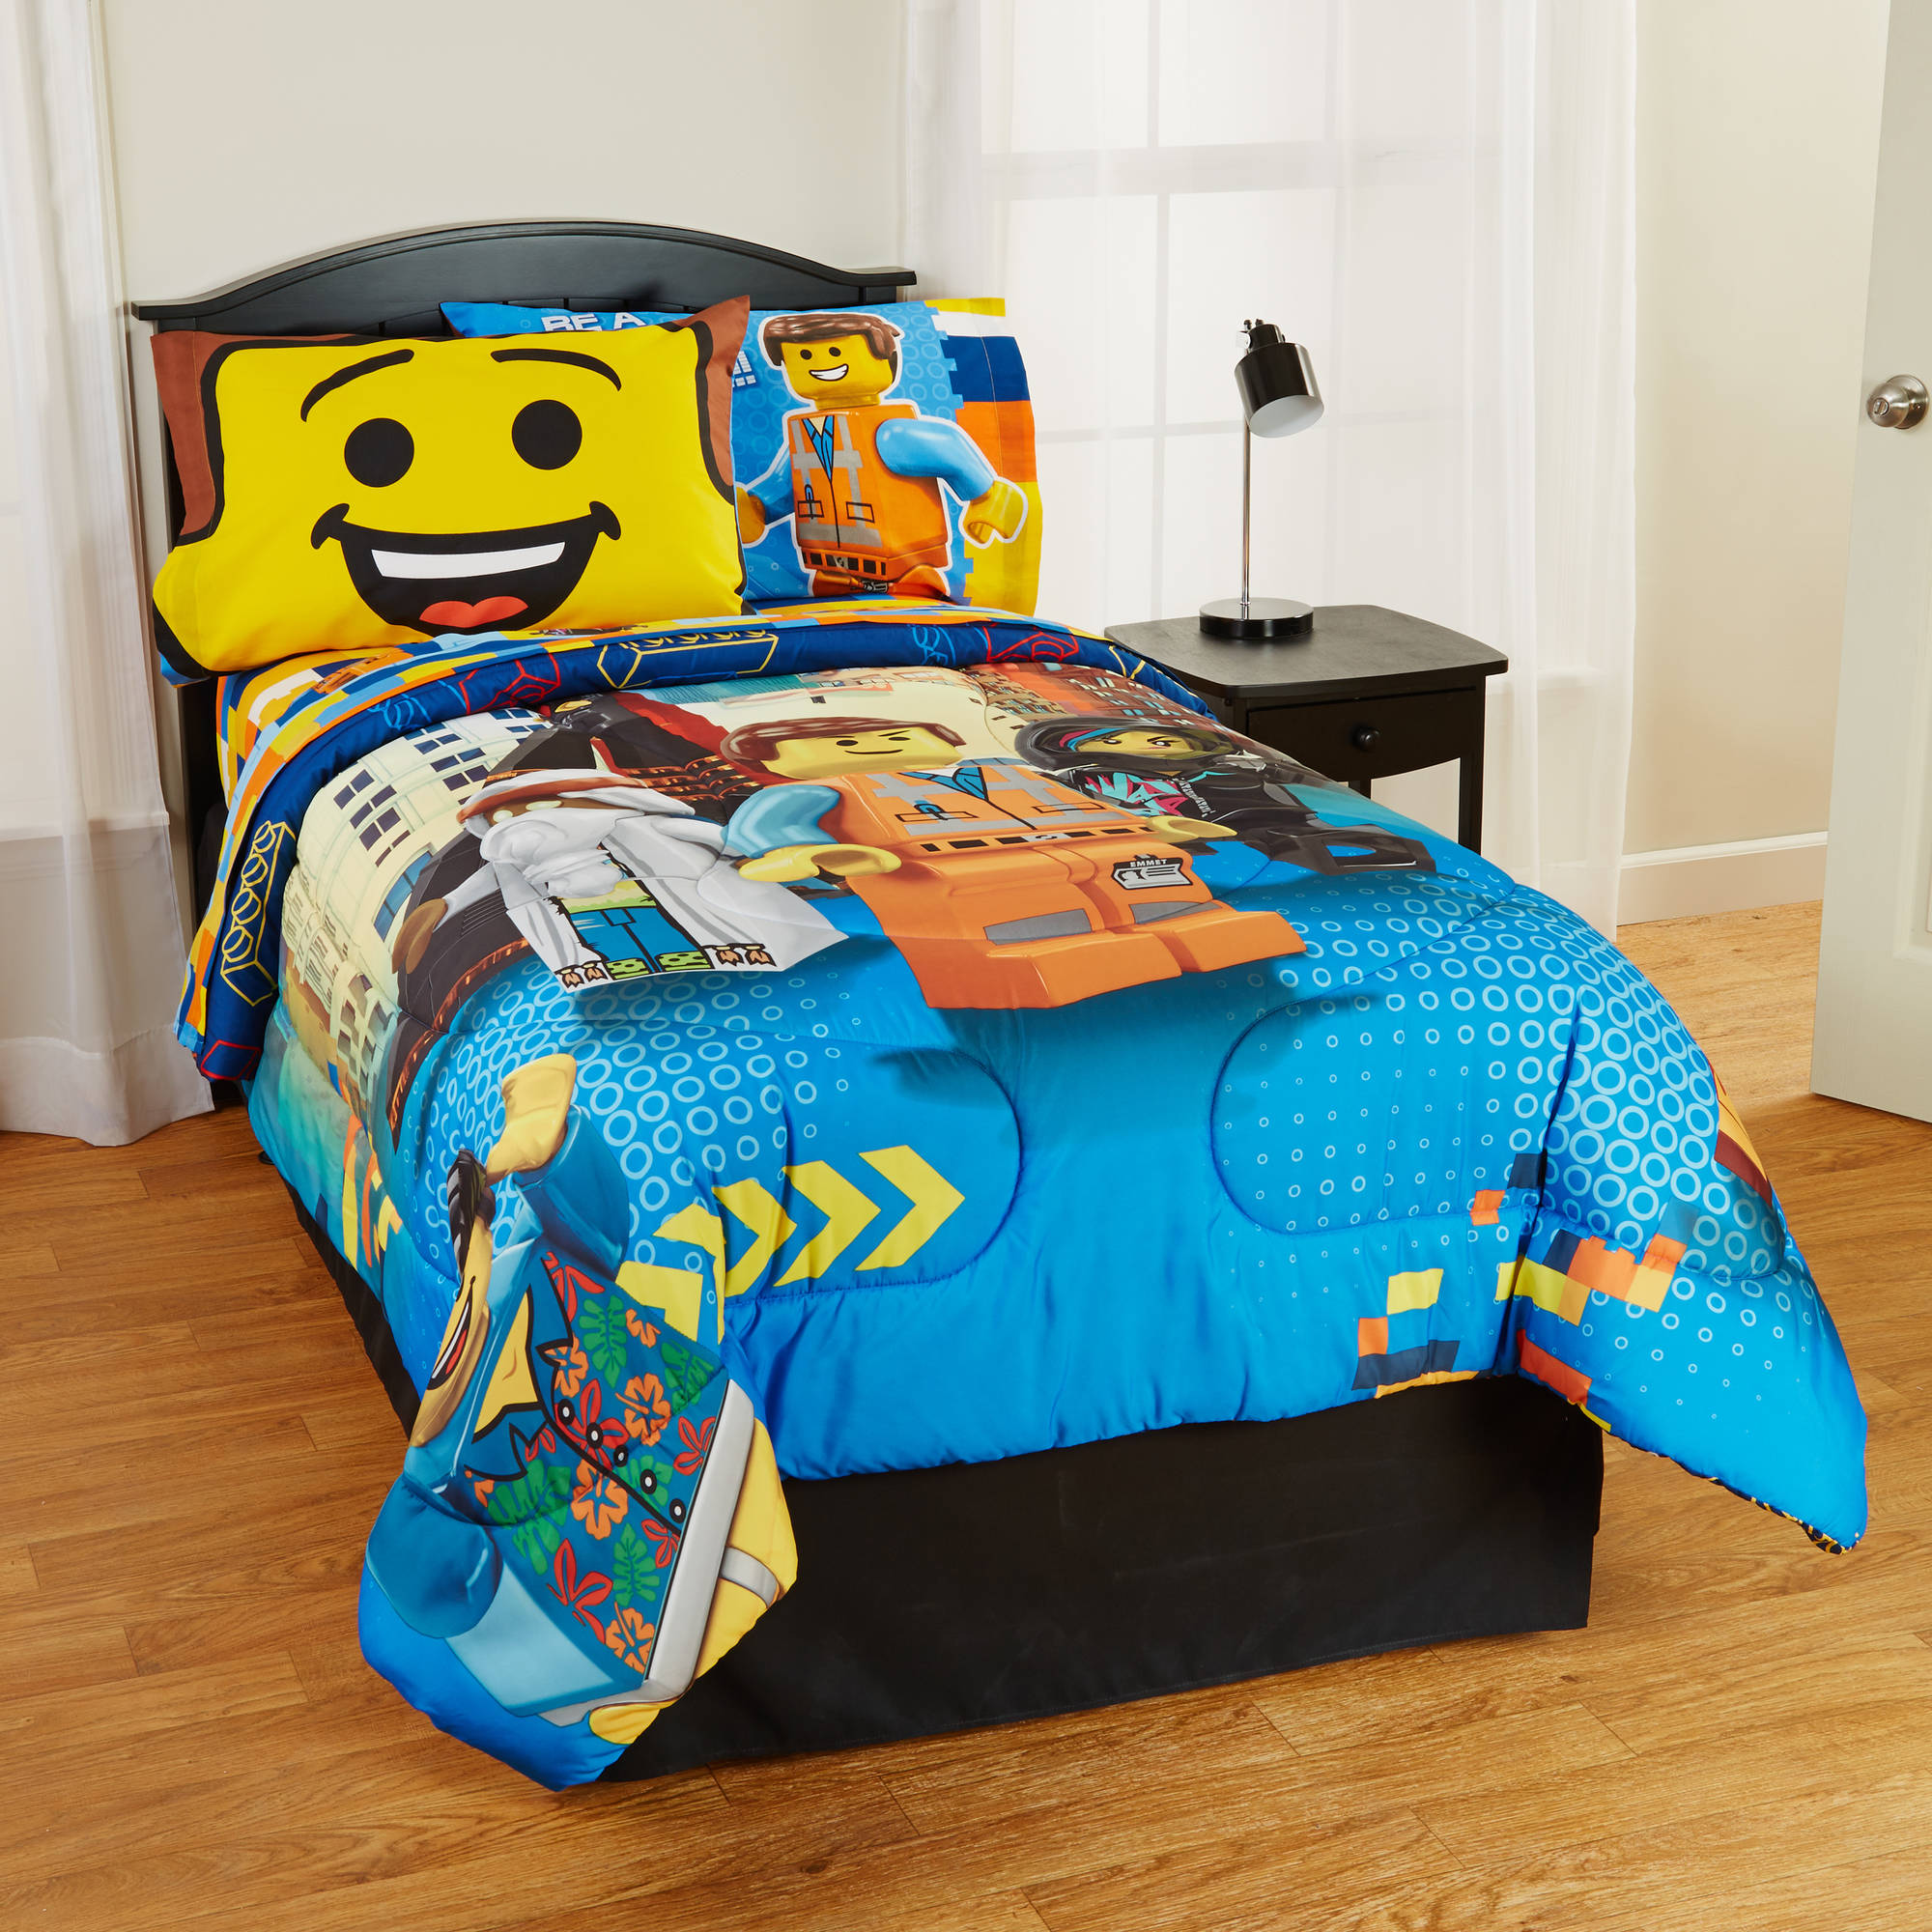 Superieur LEGO The Movie Polyester Sheet Set   Walmart.com